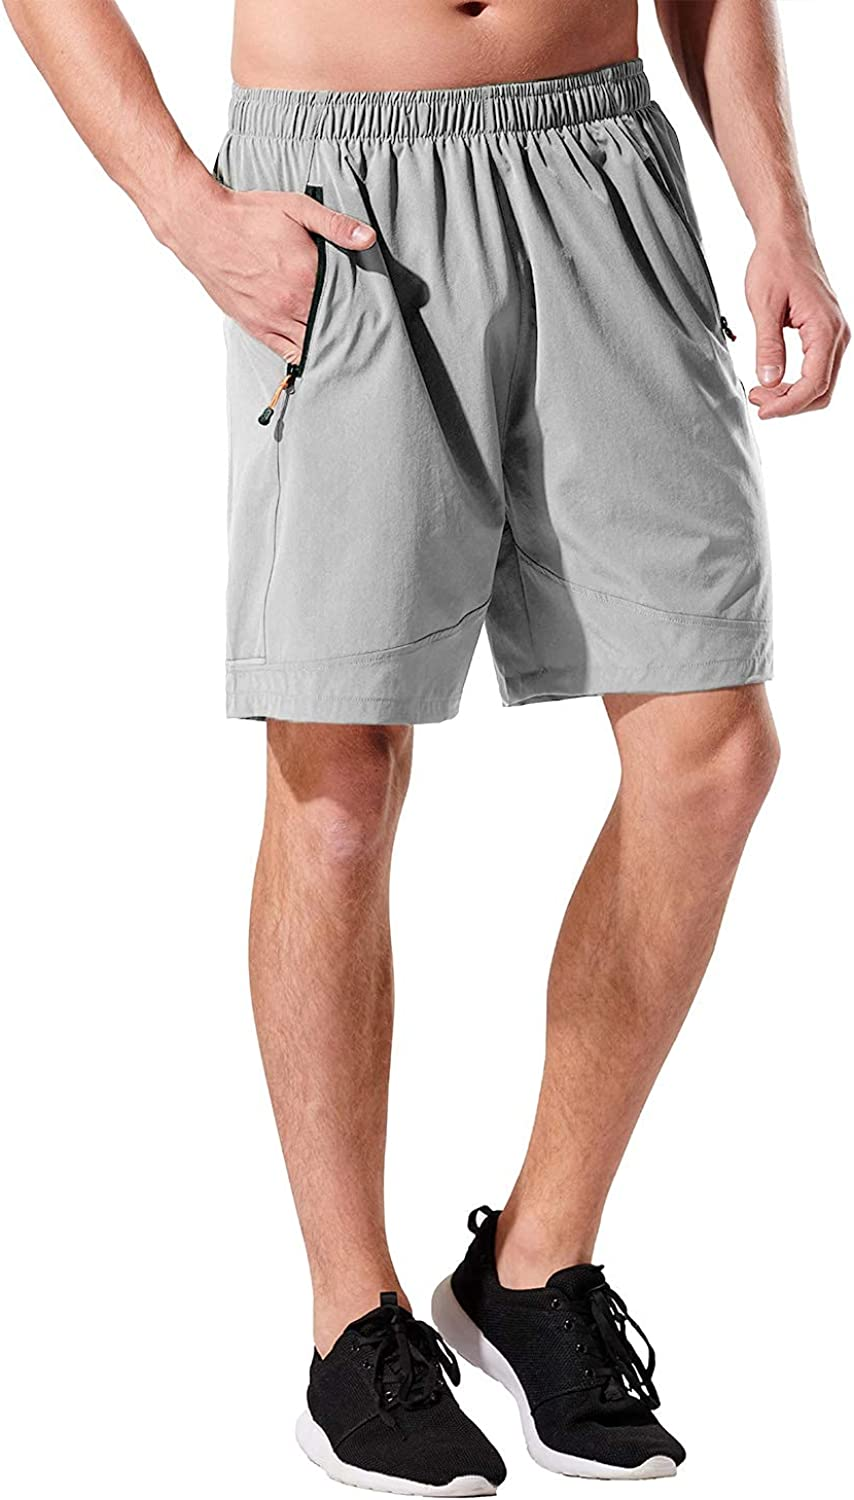 KPSUN online Ranking TOP10 shopping Men's 7 inches Running Athletic G Shorts Workout Quick Dry